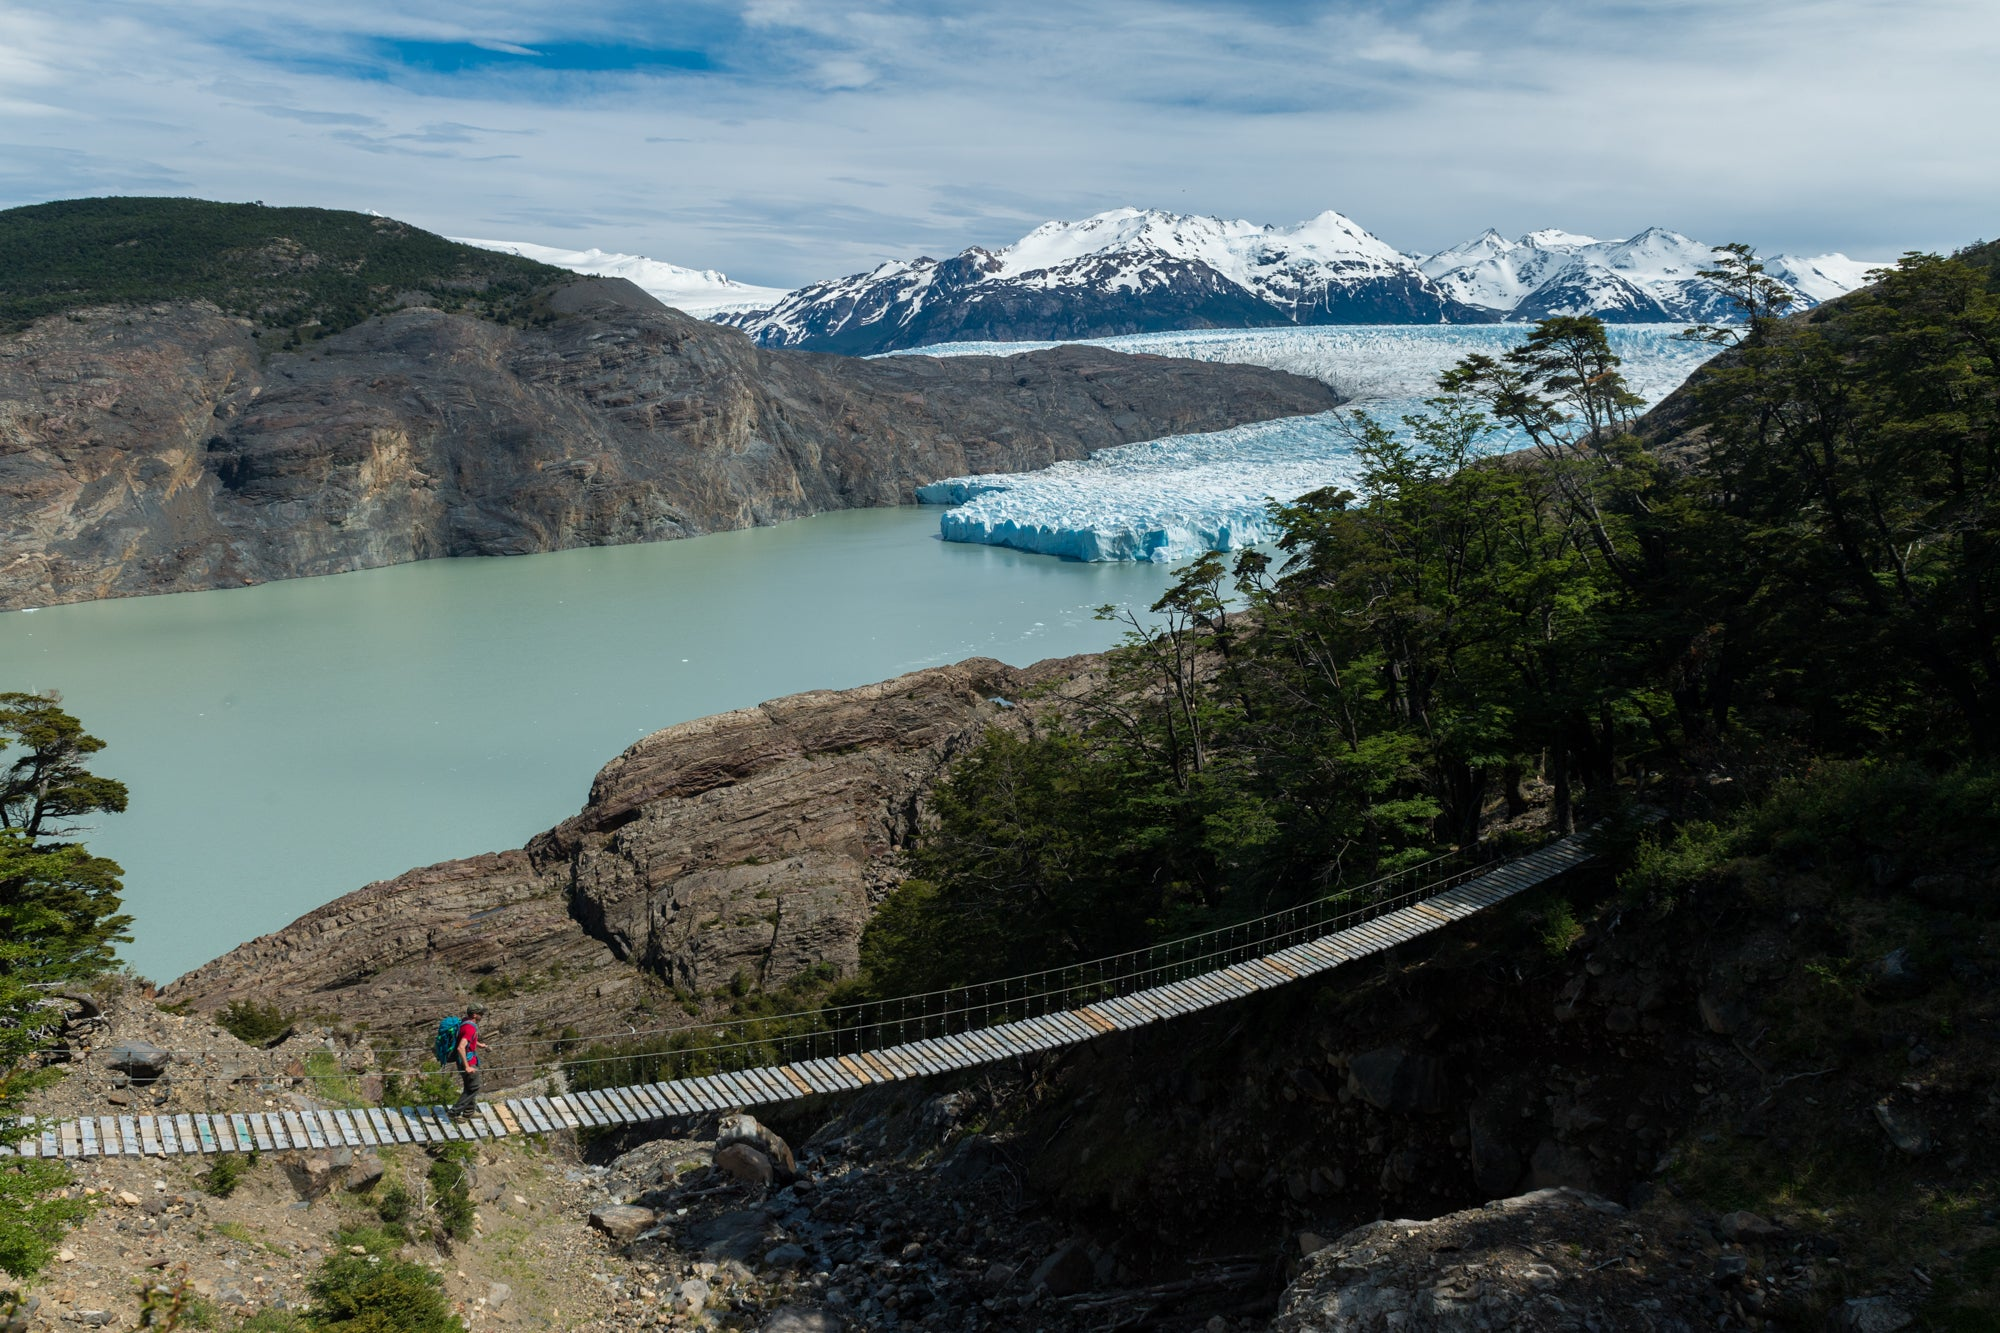 Chile and Argentina Patagonia Landscape photography